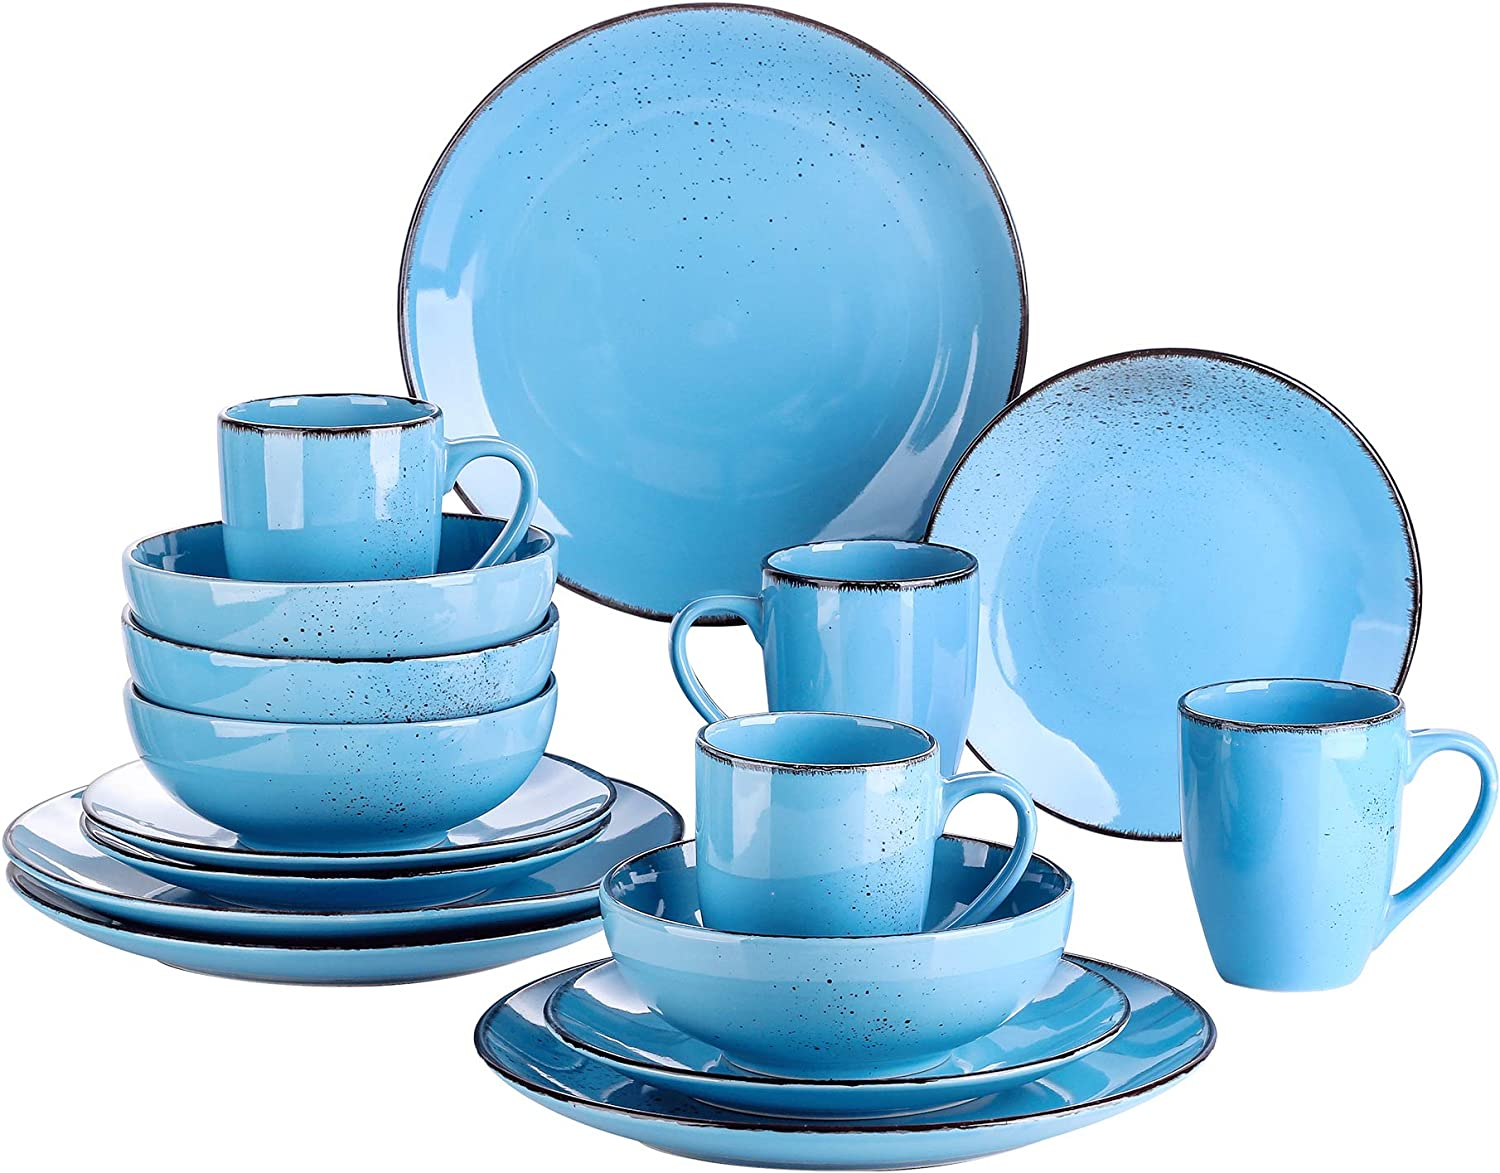 Amazon Com Vancasso Series Navia Ceramic Dinnerware Set 16 Pieces Set Of 4 Stoneware Spray Spot Patterned Service Dish With Dinner Plates Salad Plates Bowls Mugs Aqua Blue Dinnerware Sets